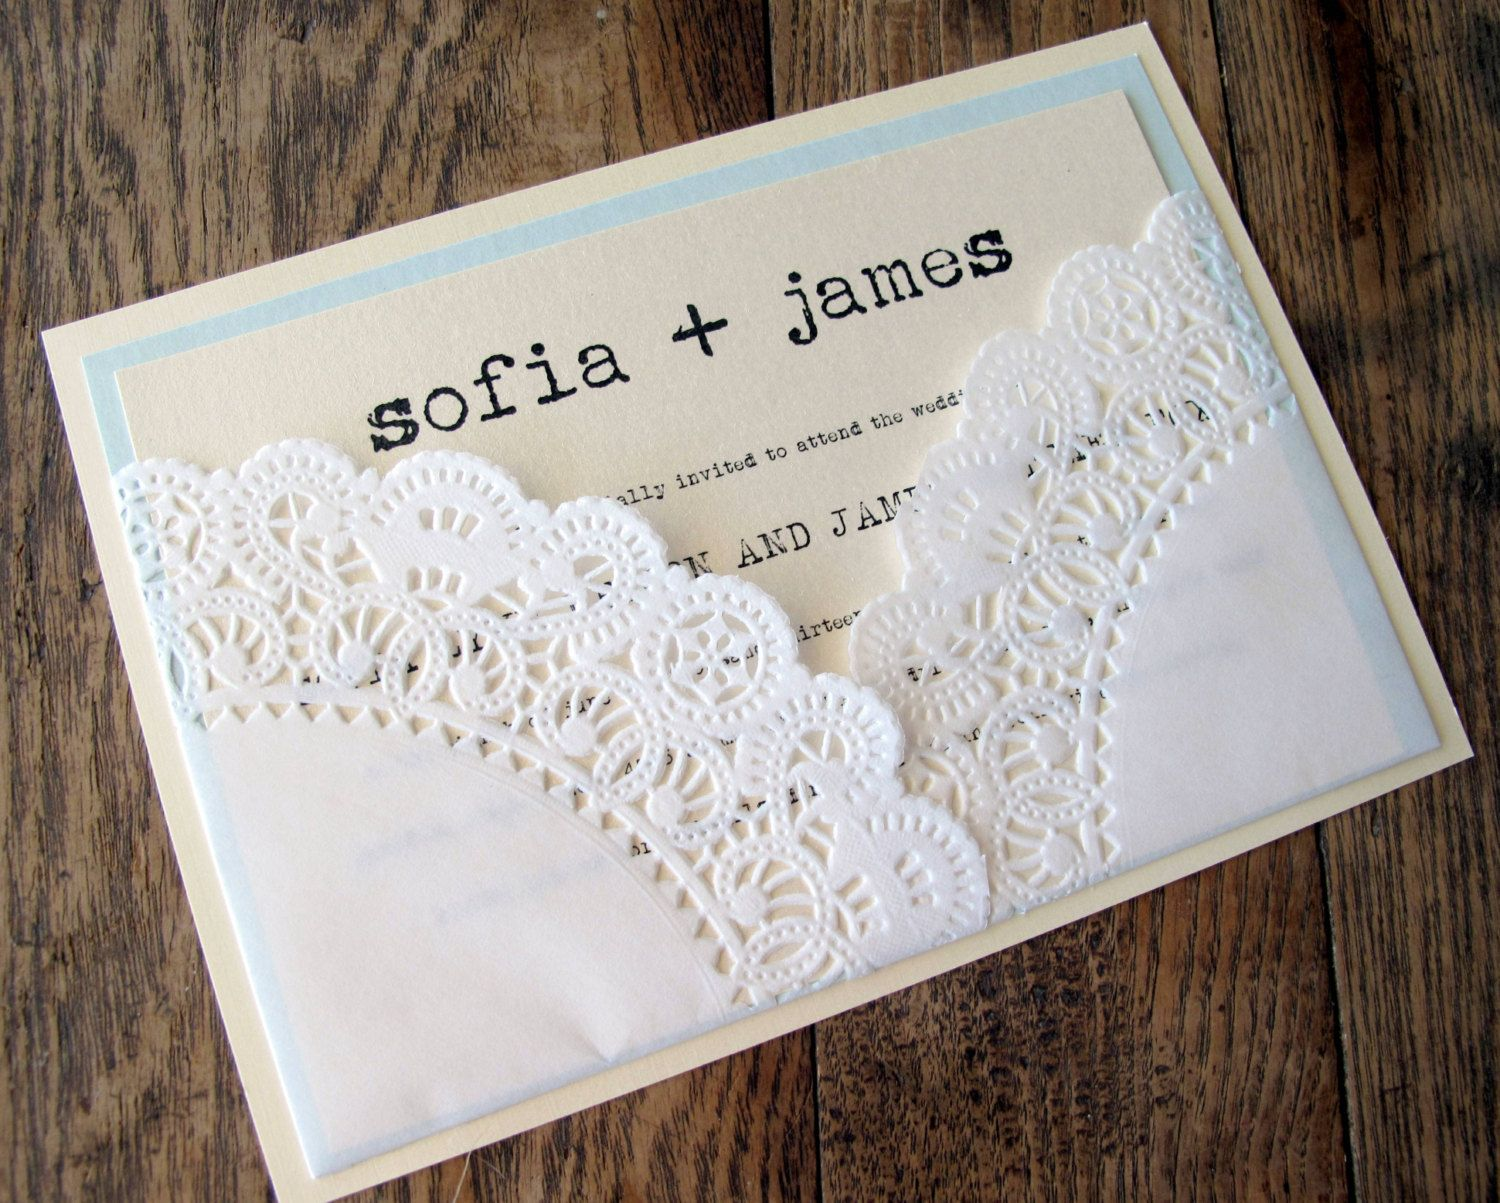 bridal shower invitations with recipe card attached%0A Wedding Invitation Vintage Lace Doily Pocket by BellaPapel on Etsy  Would  be cute idea for bridal shower